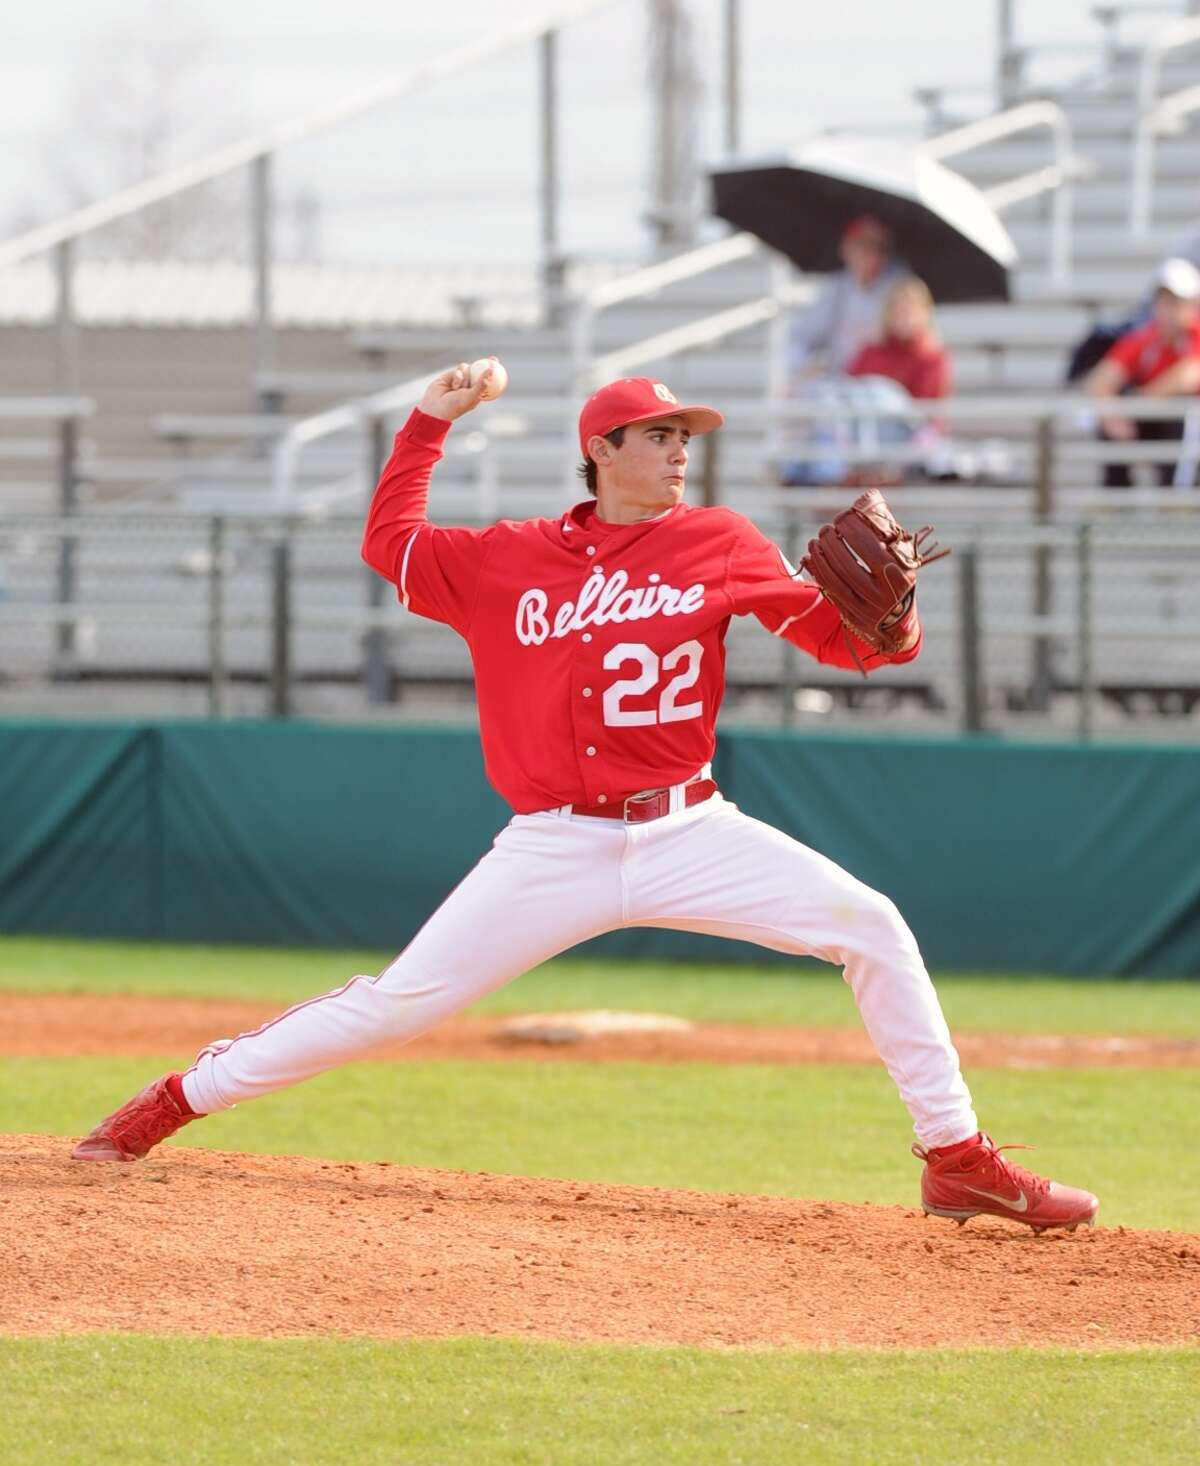 Bellaire defeated Furr to win the 45th Annual Ray Knoblauch Baseball Tournament, 8-0. Bellaire went undefeated in the tournament. Bellaire relief pitcher Colton Rembert (22) delivers the pitch.